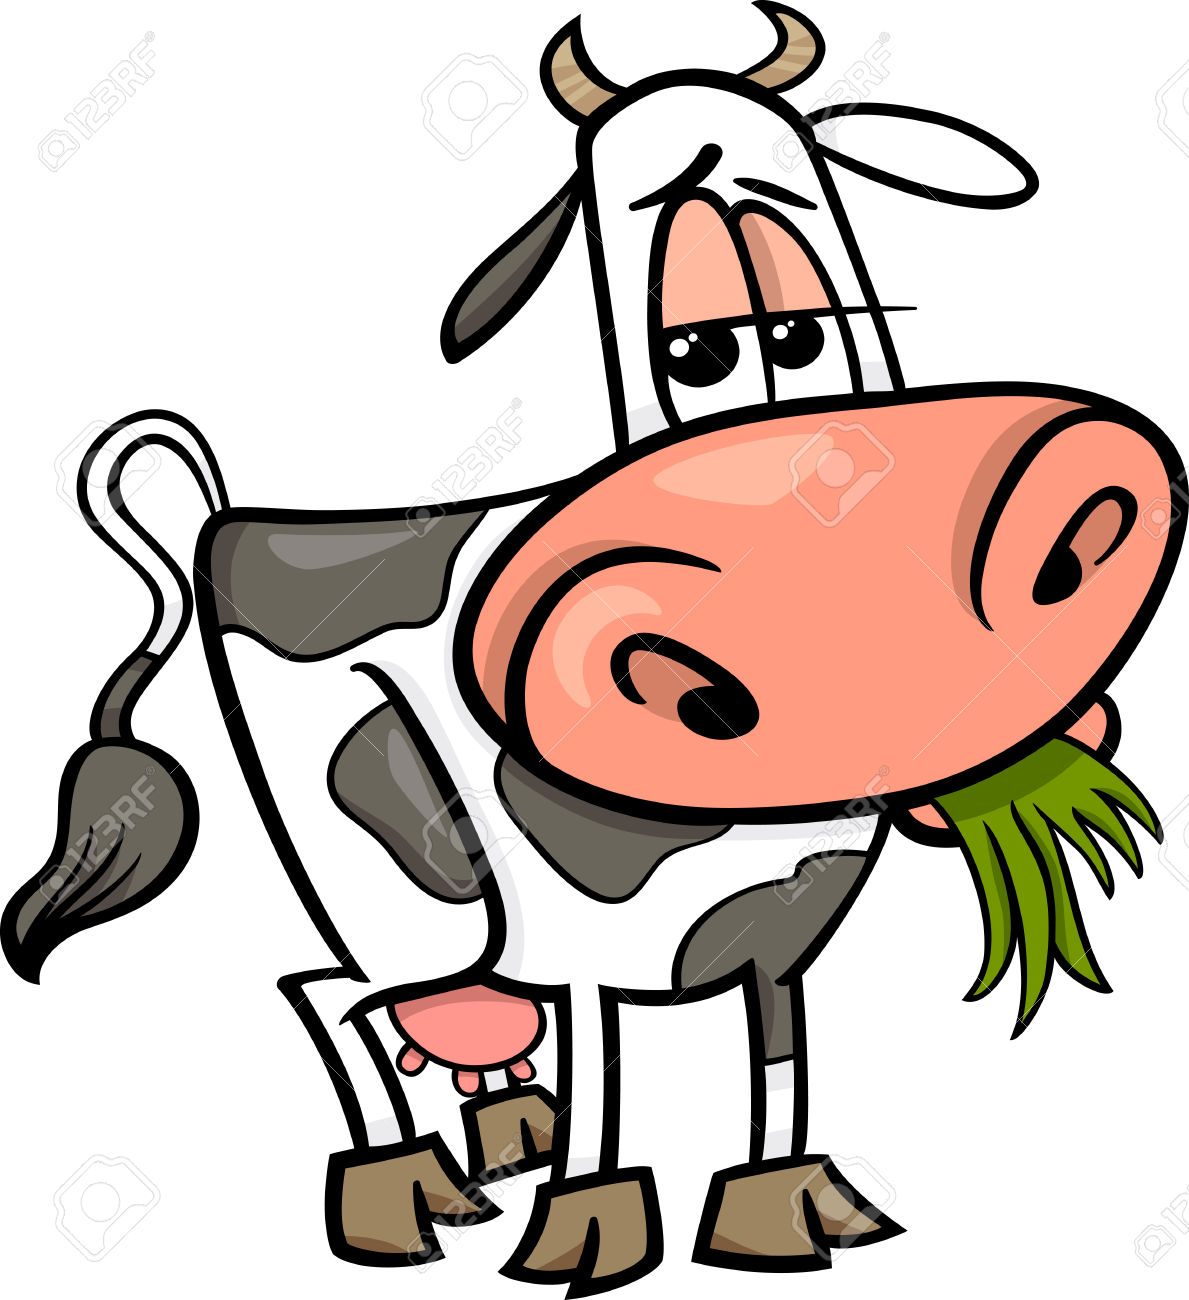 hight resolution of 1189x1300 farm animals clipart cow farm